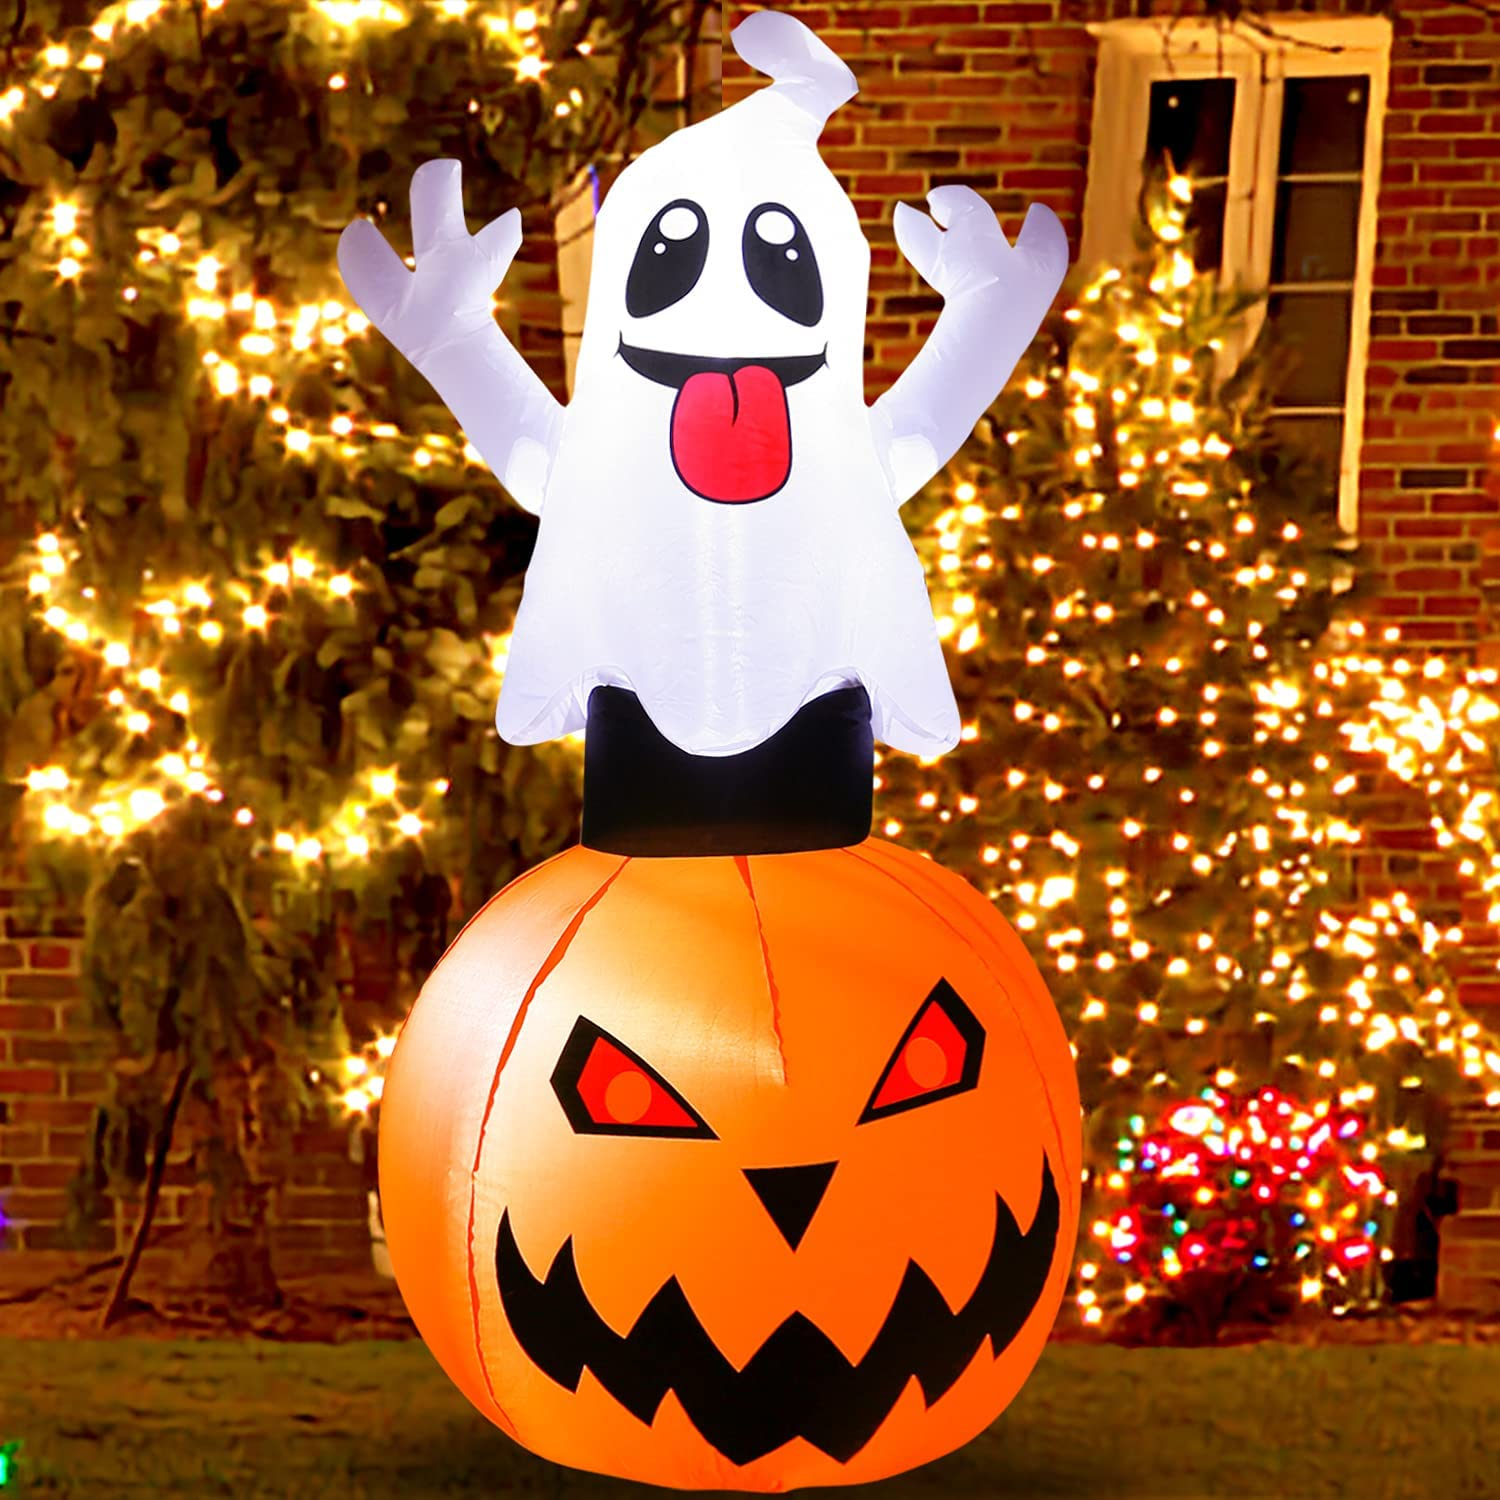 5 Ft Halloween Decorations Outdoor Inflatable Ghost Pumpkin Halloween Inflatables Blow up Pumpkin with Super Bright LED Lights for Home Yard Garden Lawn Party Holiday Decor Indoor